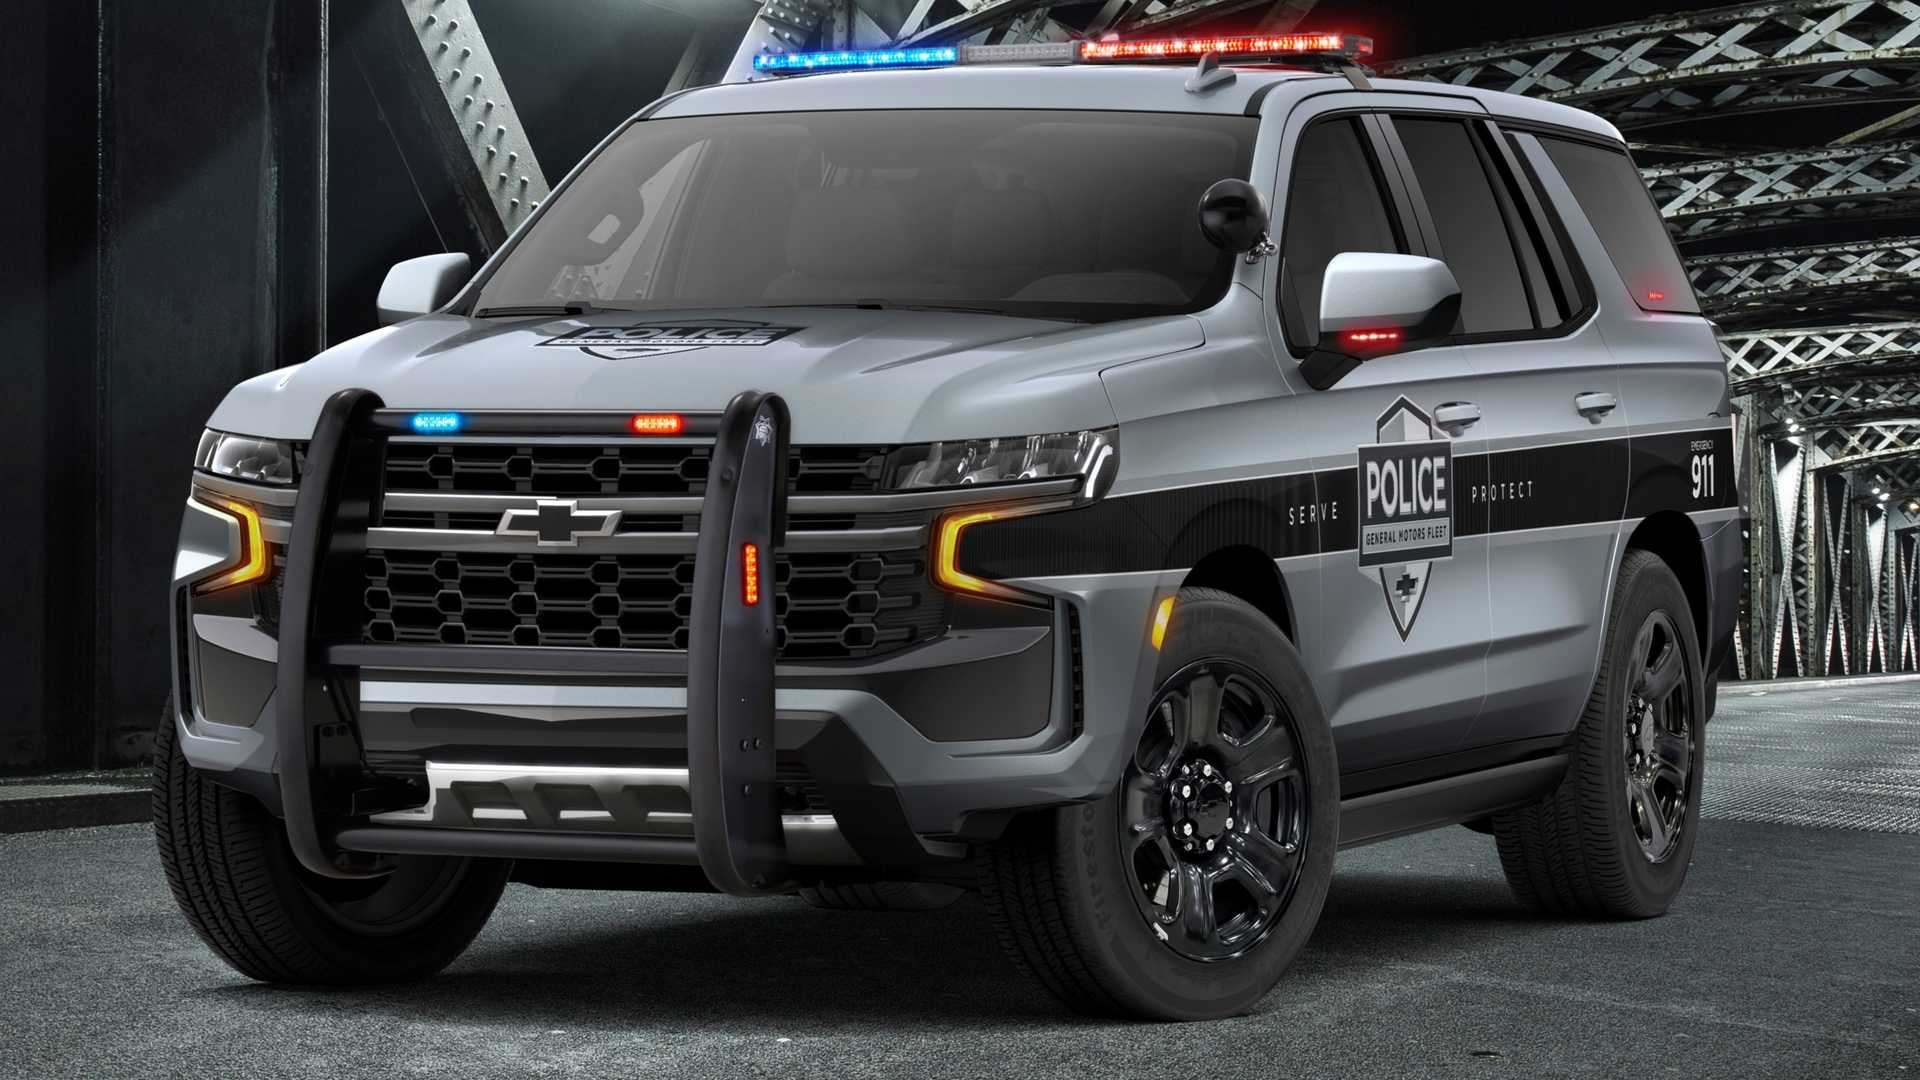 2021-chevrolet-tahoe-police-pursuit-vehicle.jpg